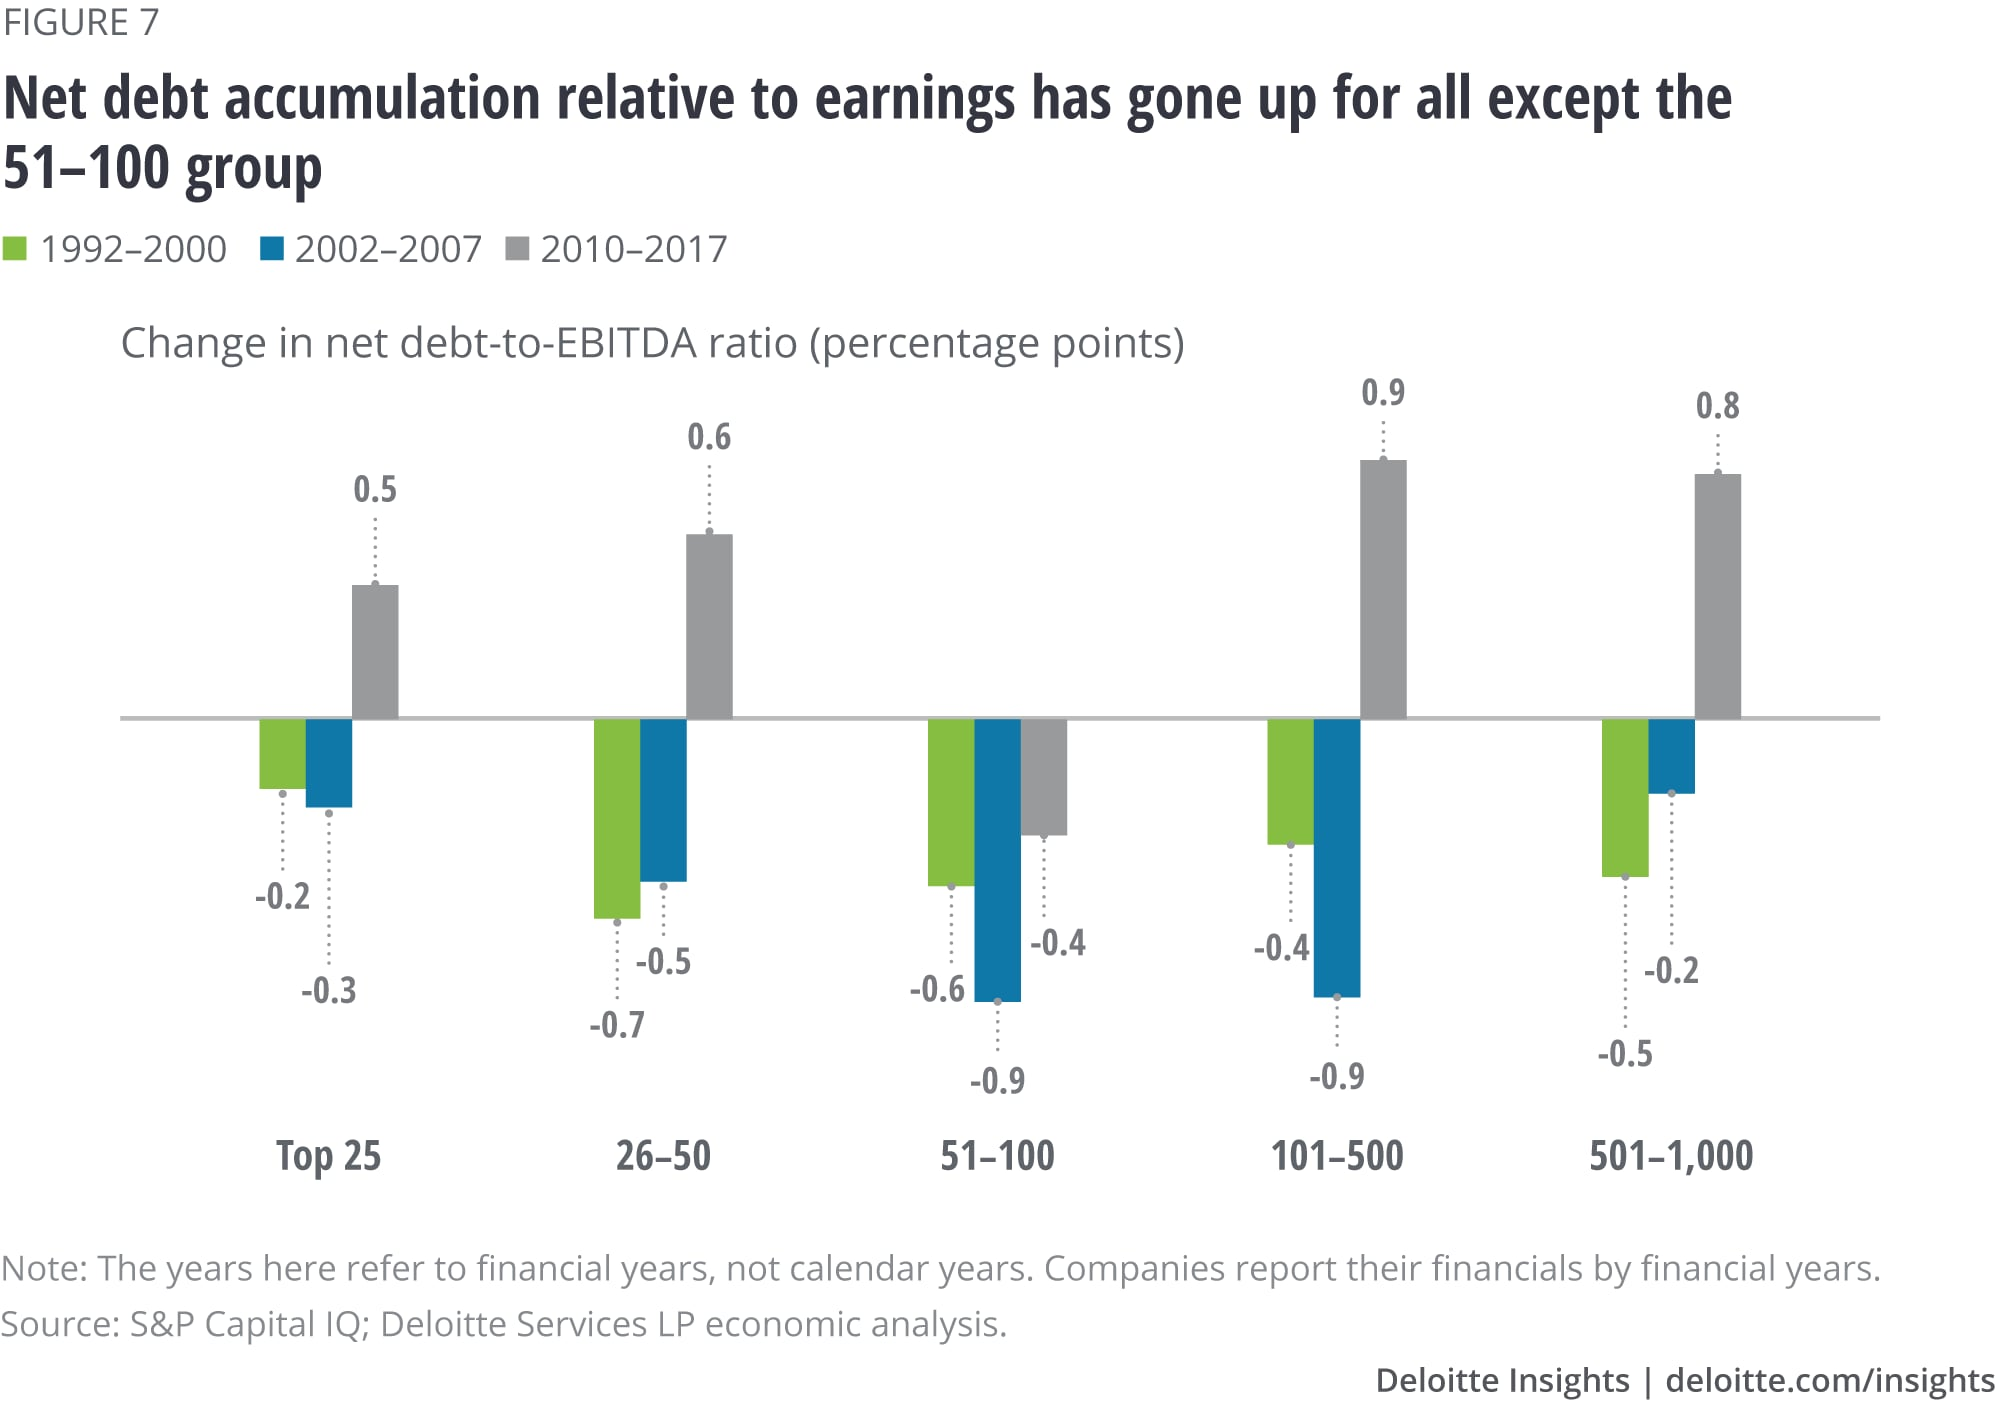 Net debt accumulation relative to earnings has gone up for all except the 51–100 group